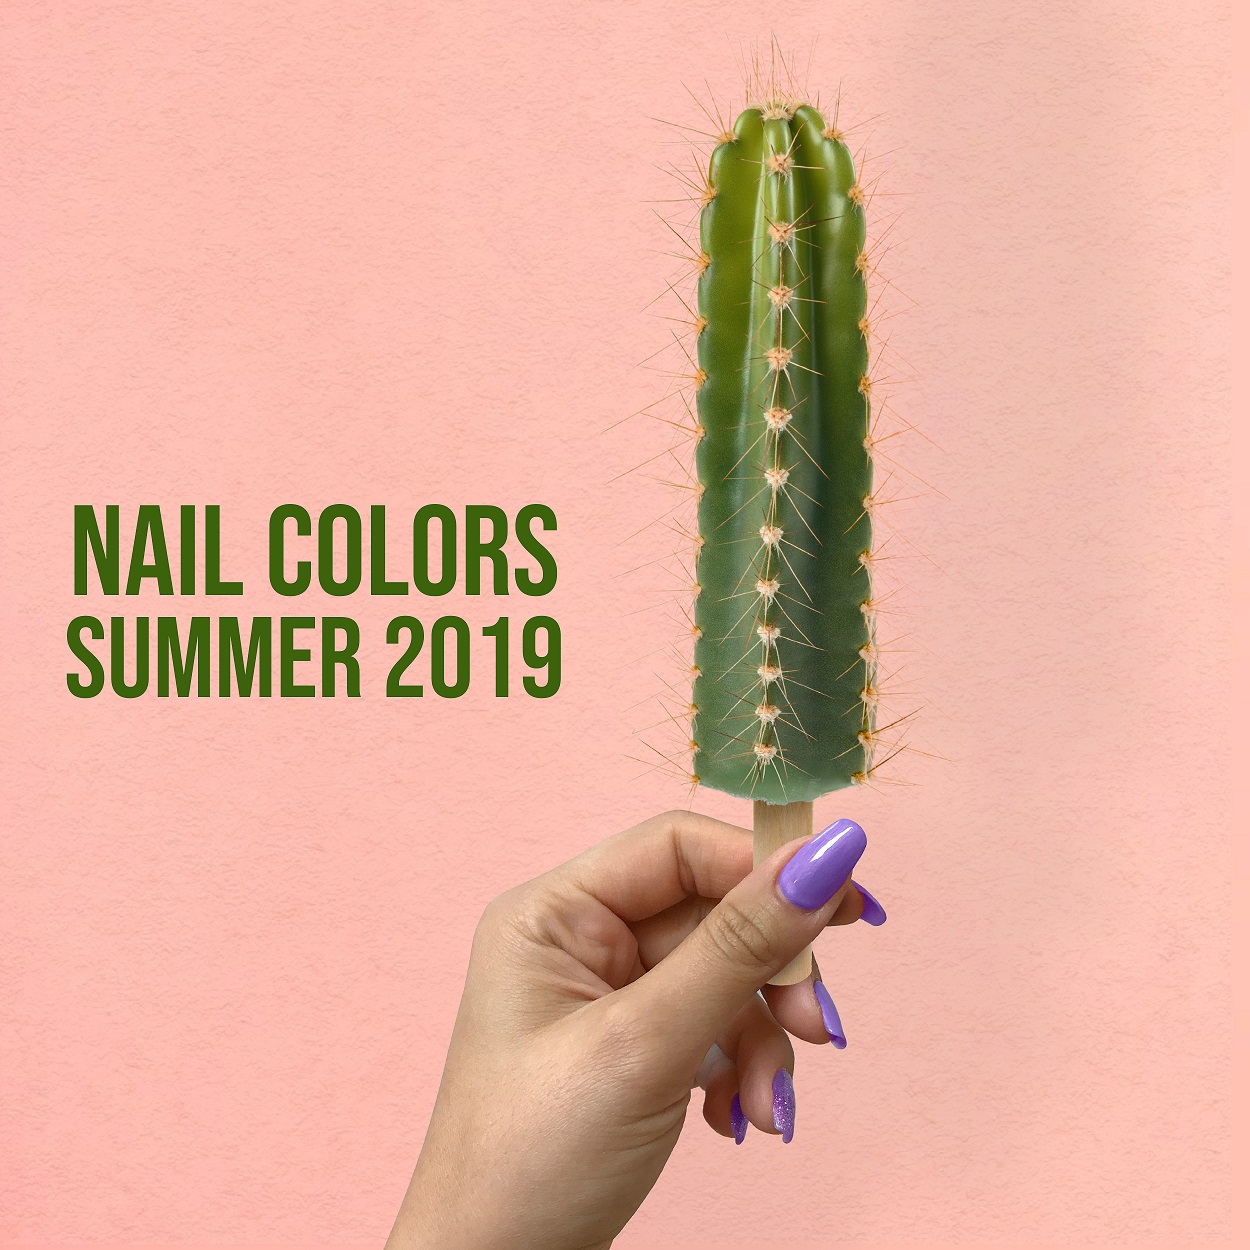 Nail Colors Summer 2019